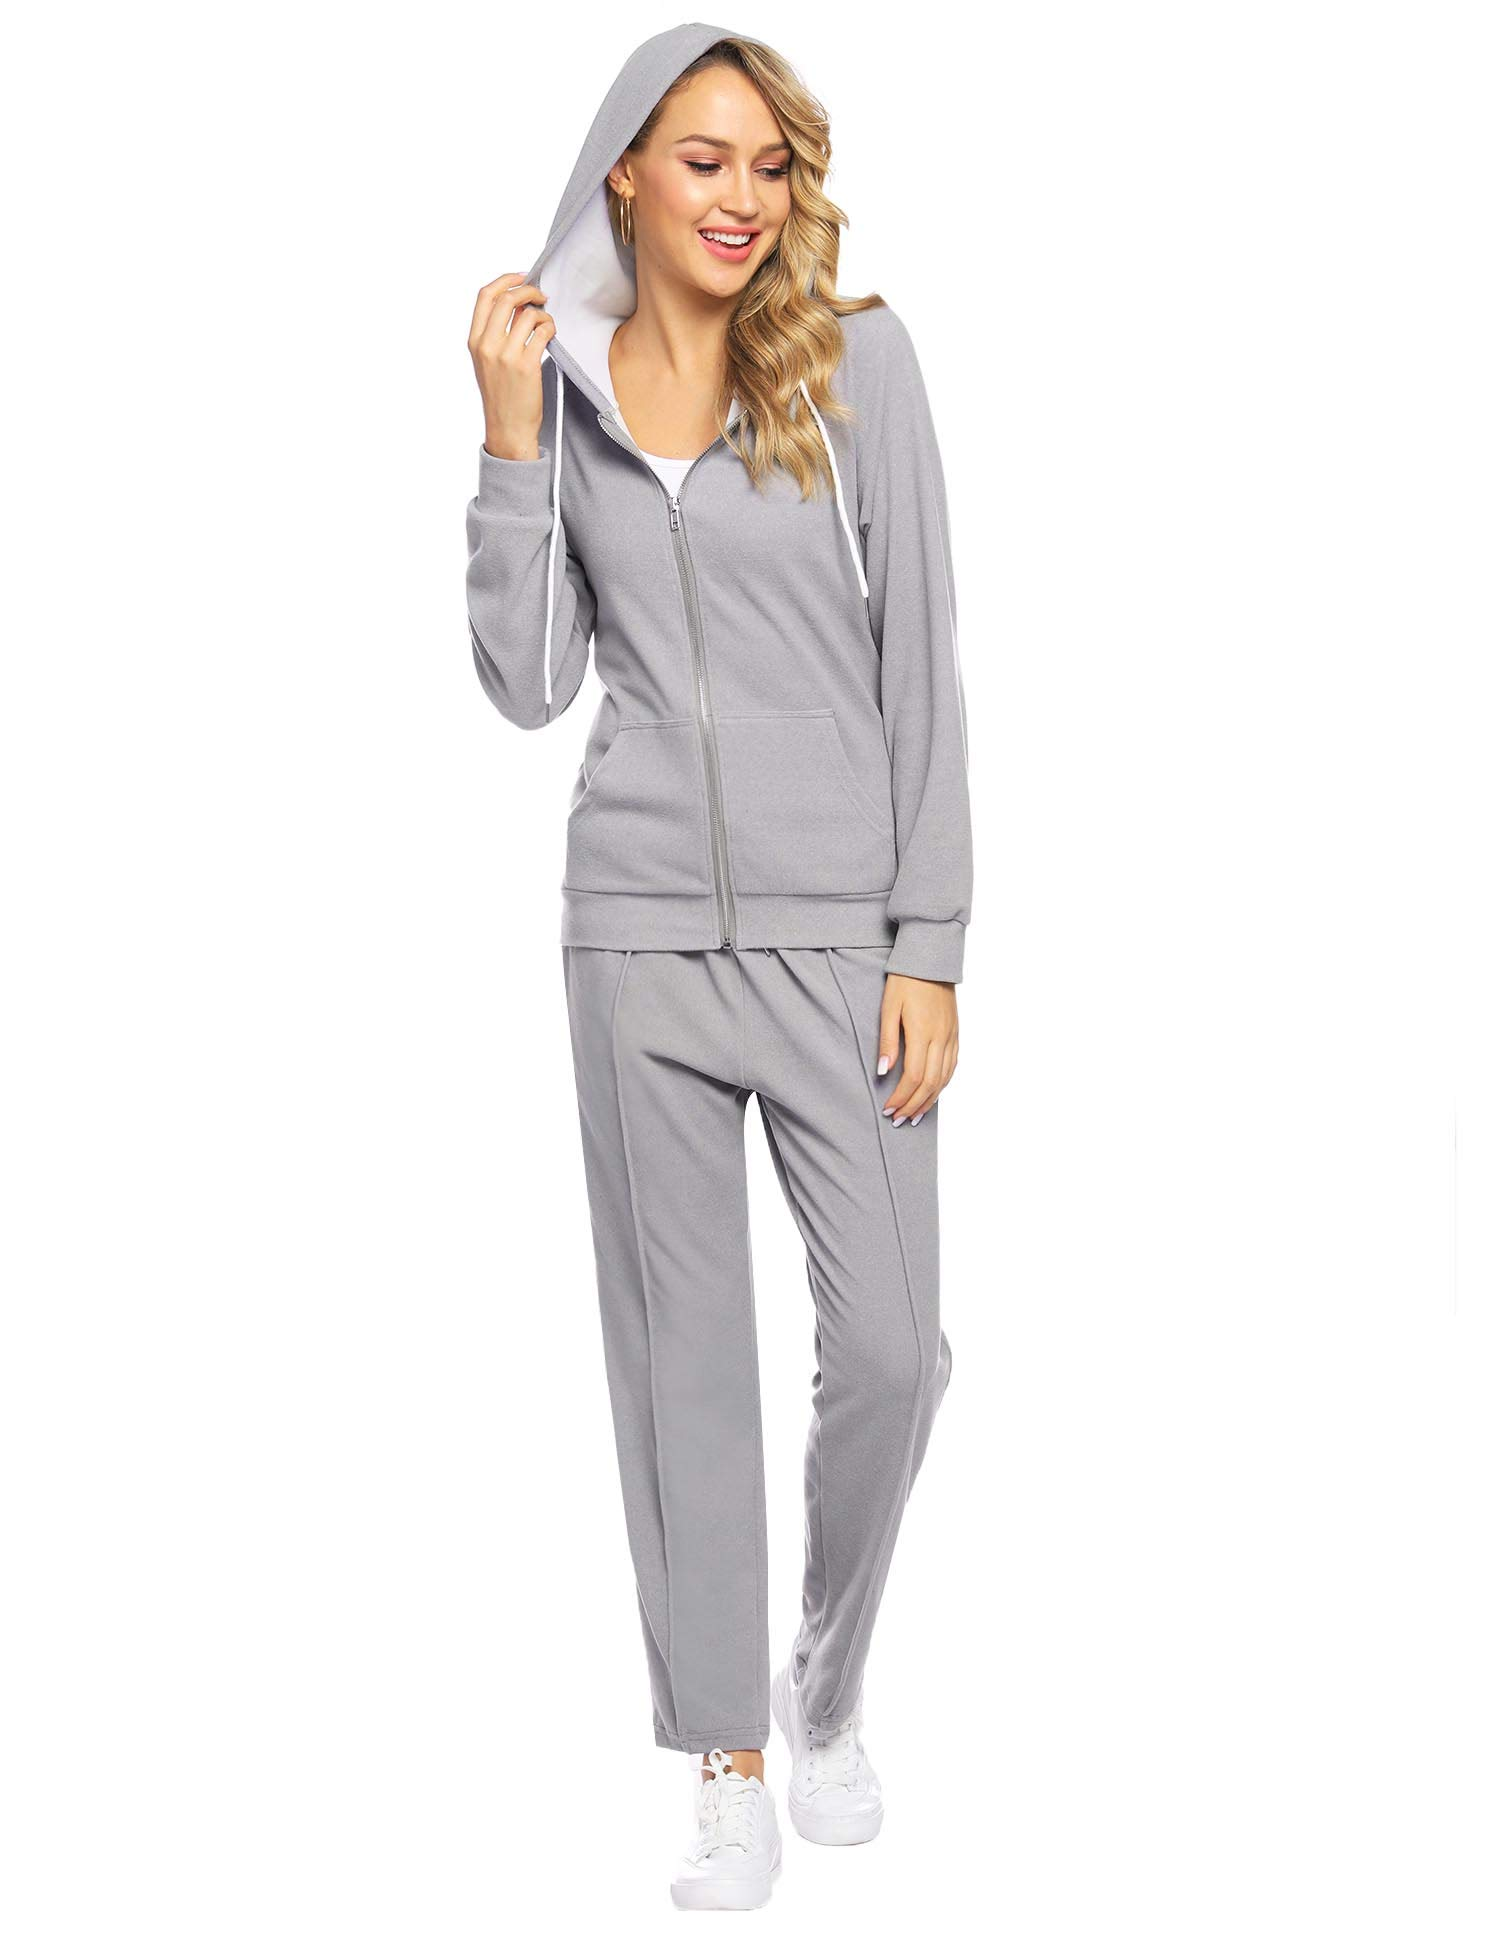 Abollria Women's Velour Sweatsuit Set Zip up Hoodie and Pants Sport Suits Tracksuits Light Grey by Abollria